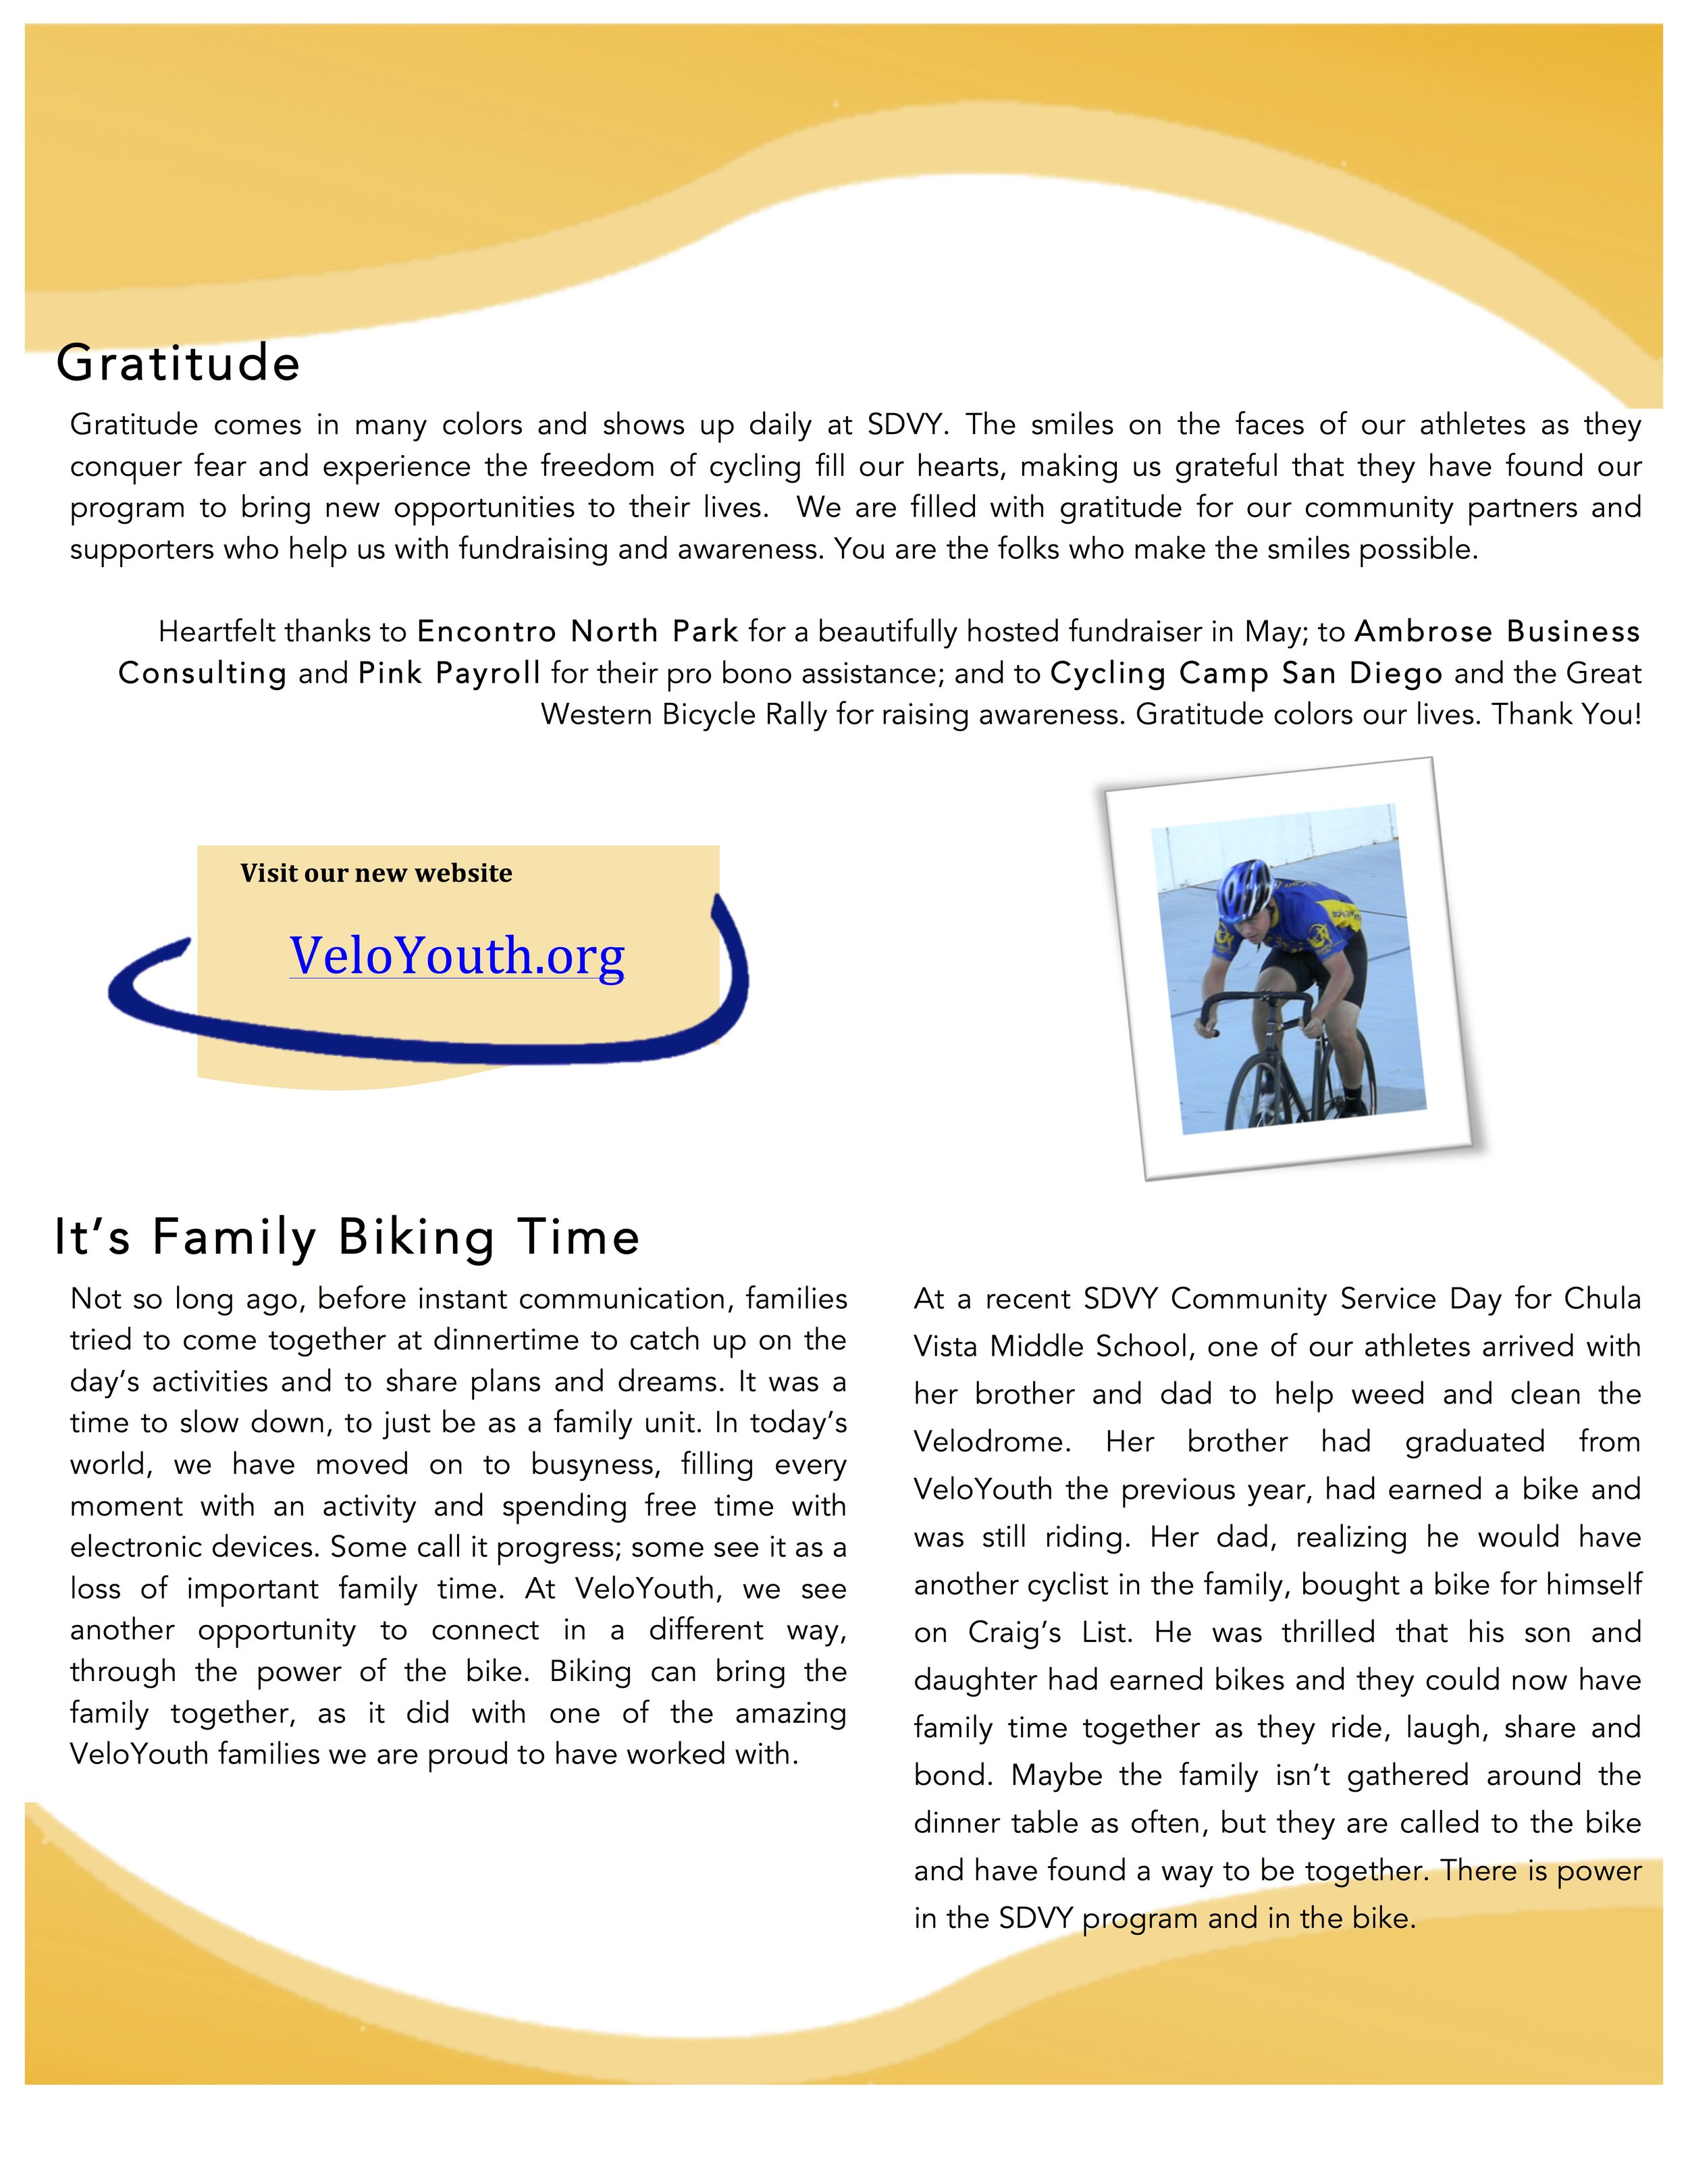 Possibilities In Motion 2016-2 Page 3.jpg